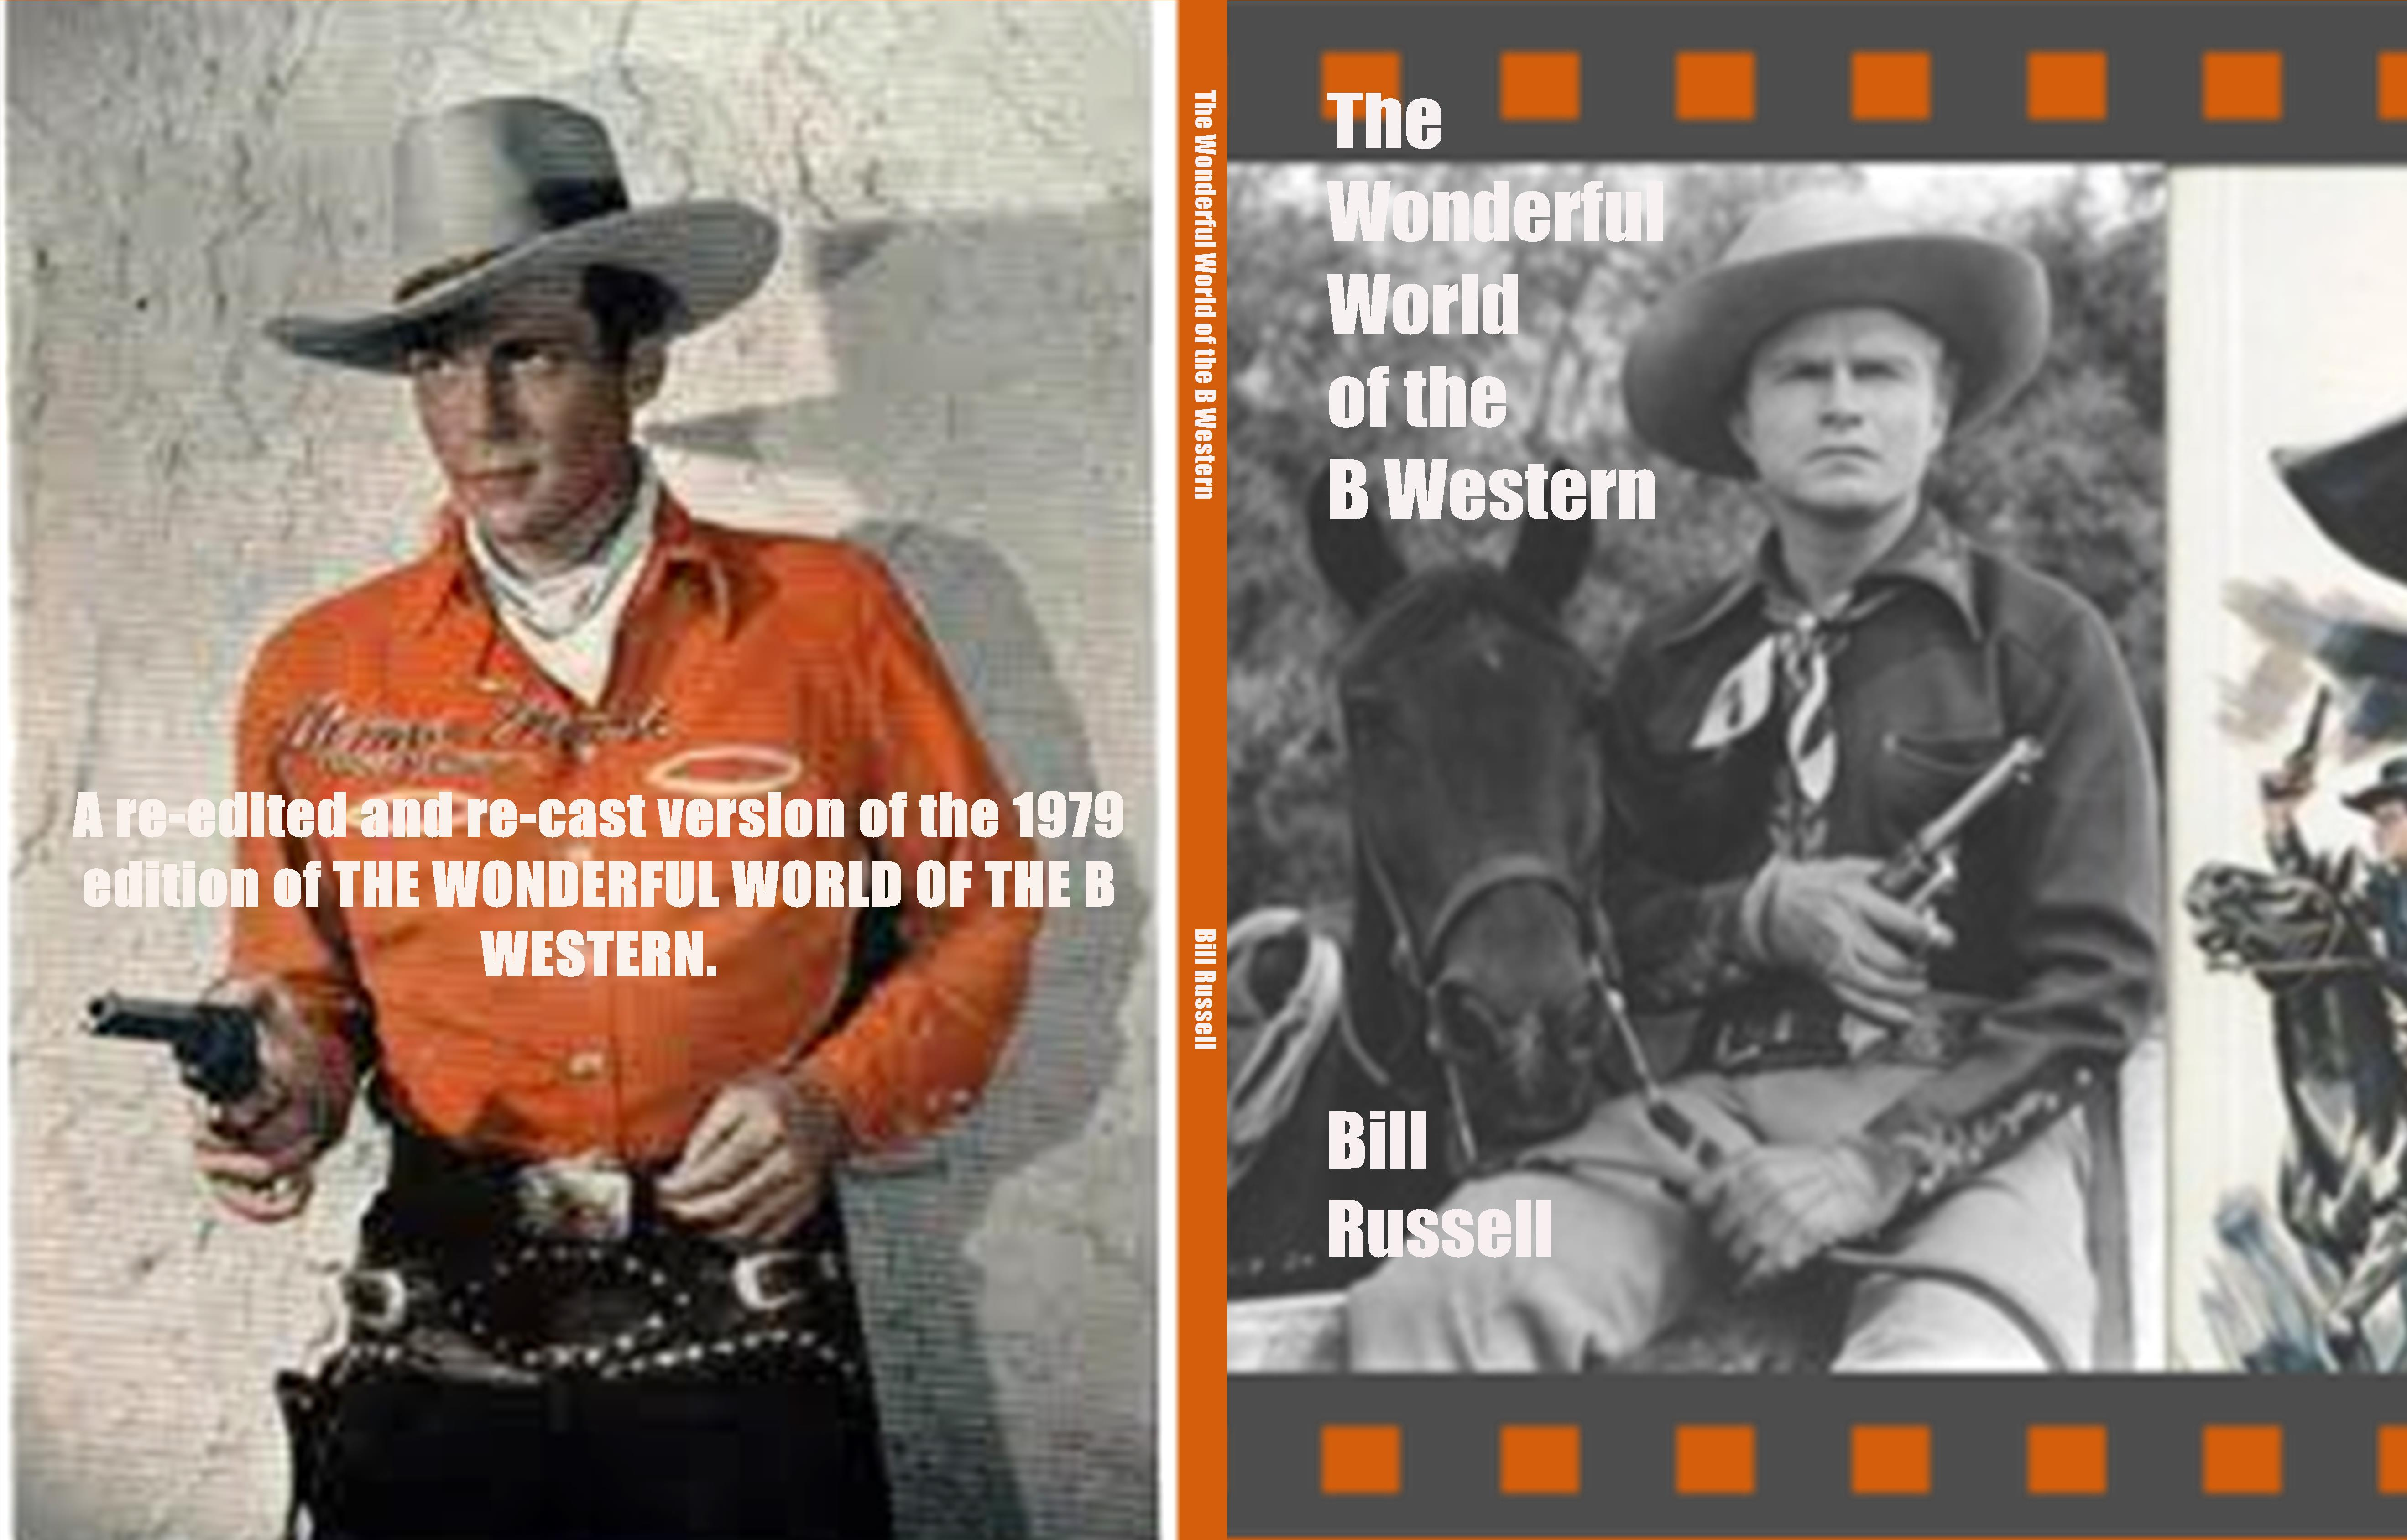 The Wonderful World of the B Western cover image